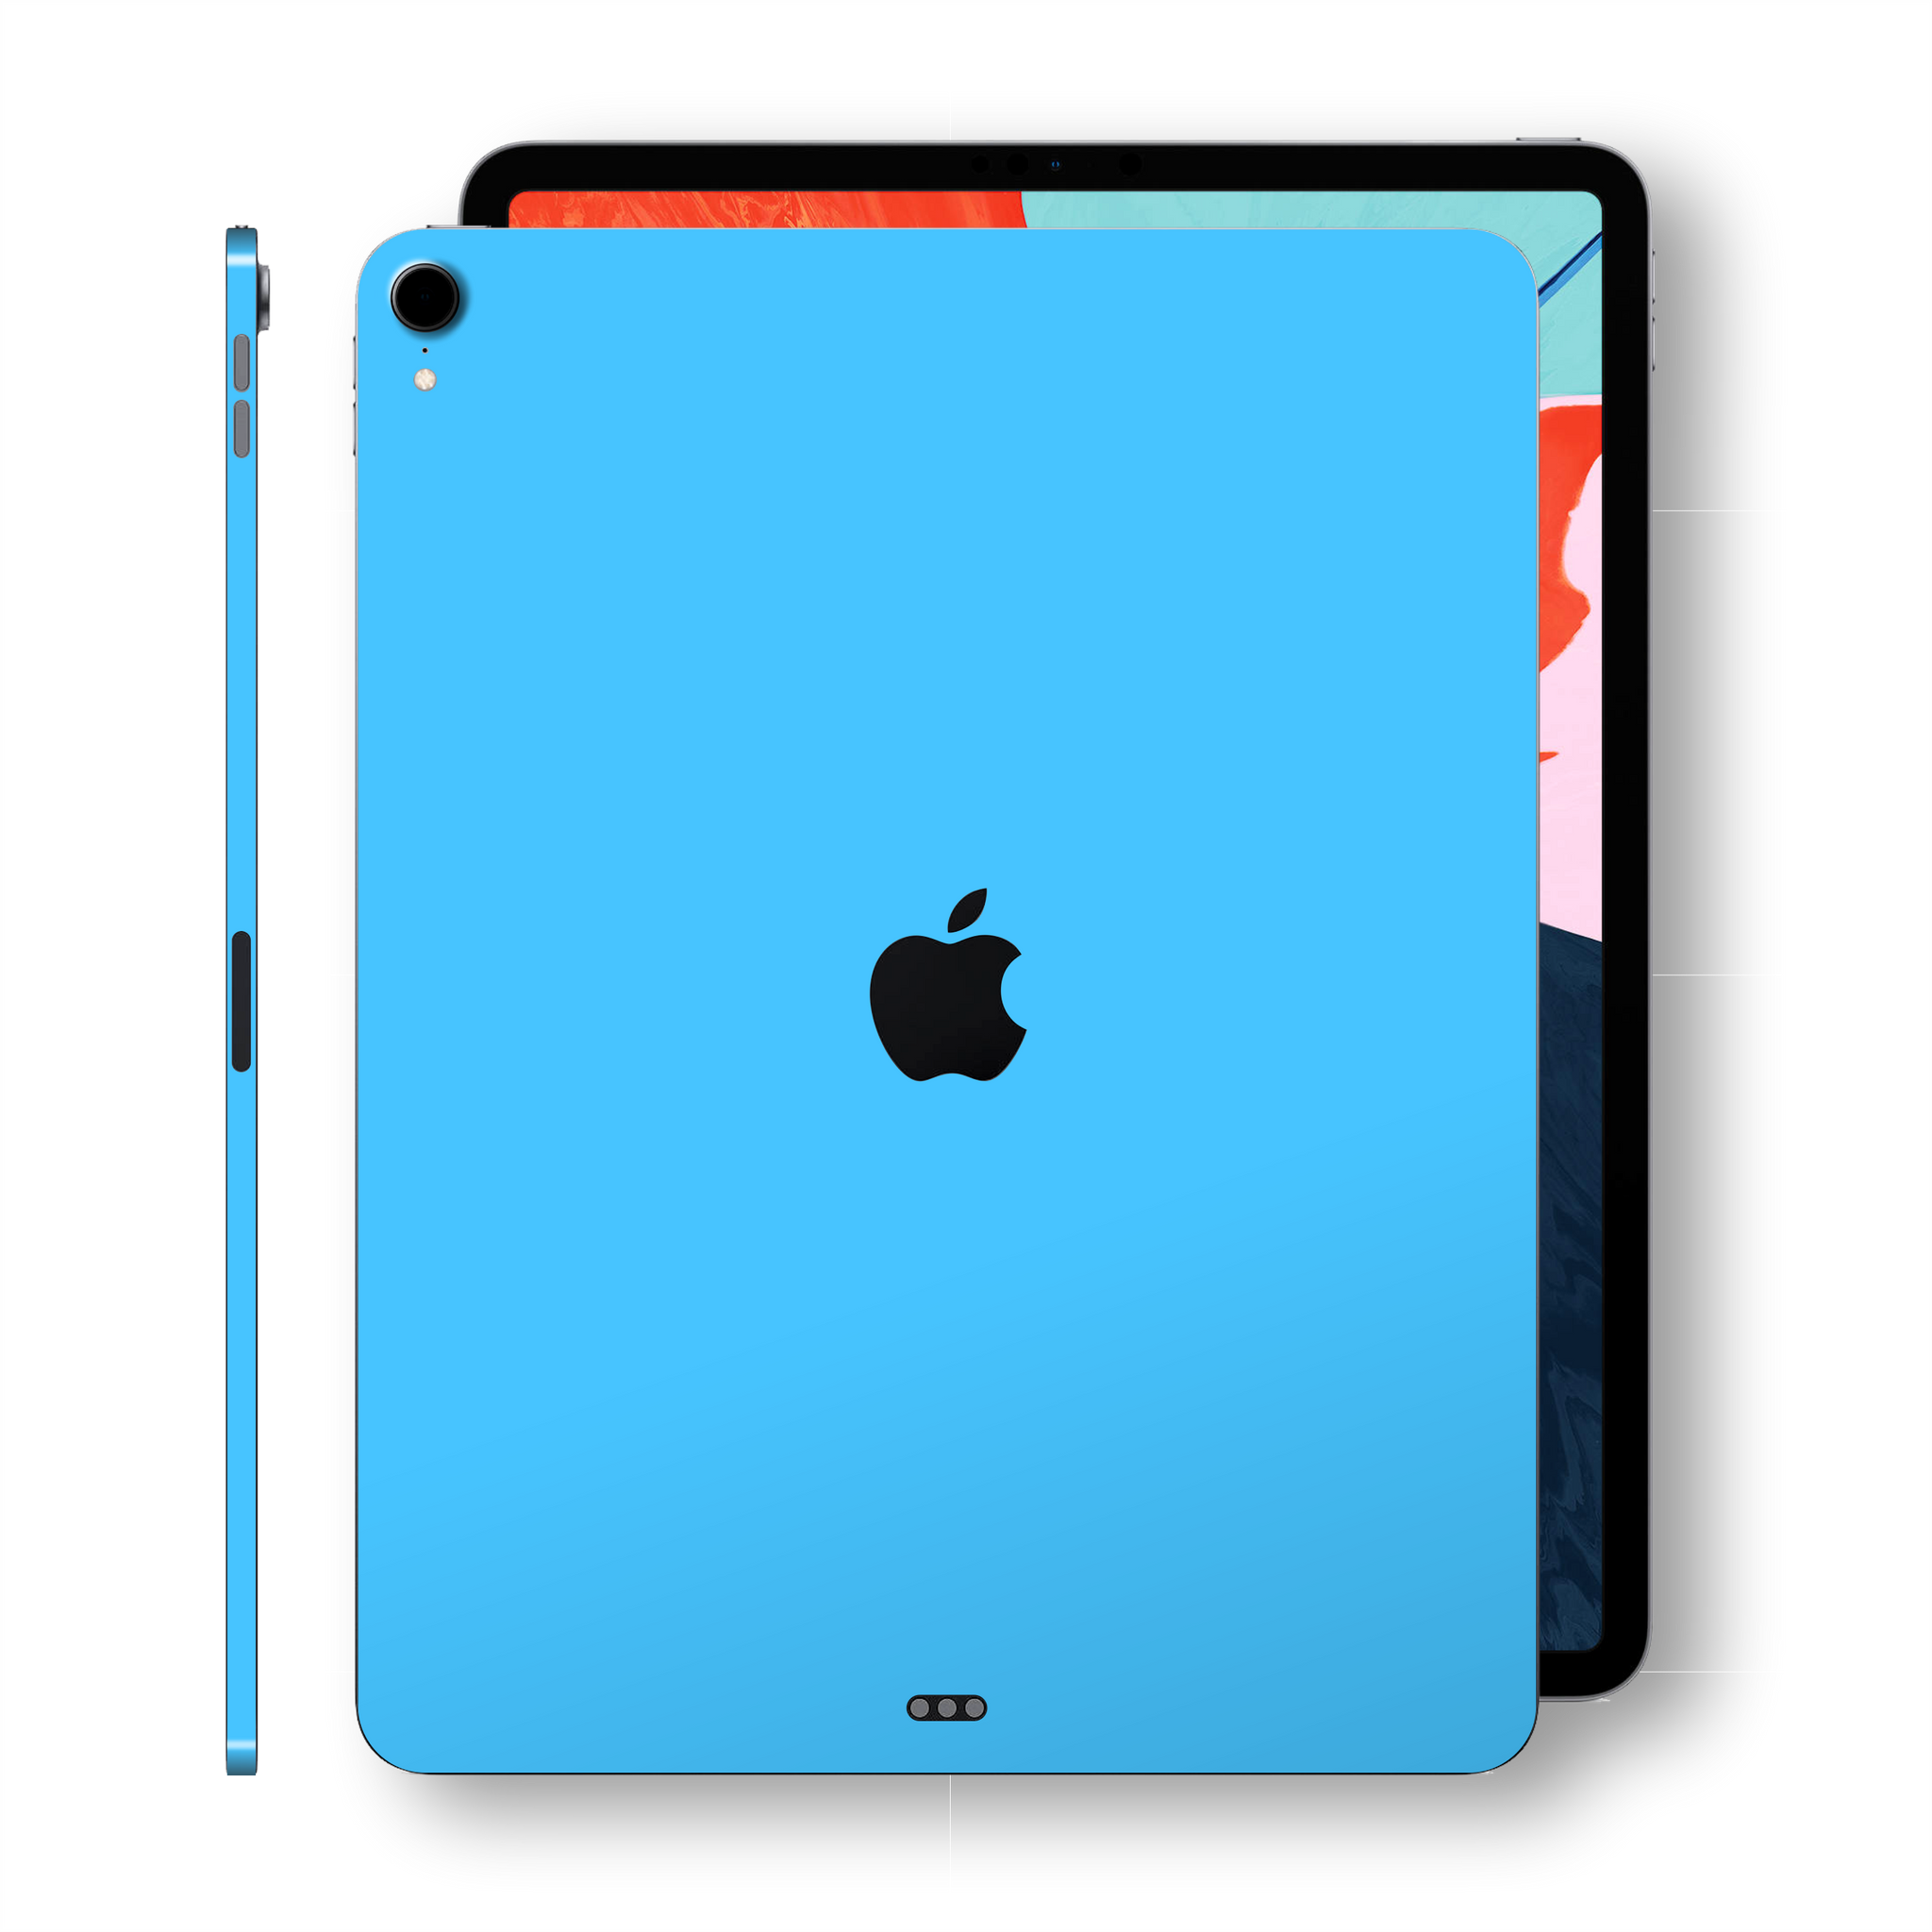 iPad PRO 11 inch 2018 Matt Matte Blue Skin Wrap Sticker Decal Cover Protector by EasySkinz